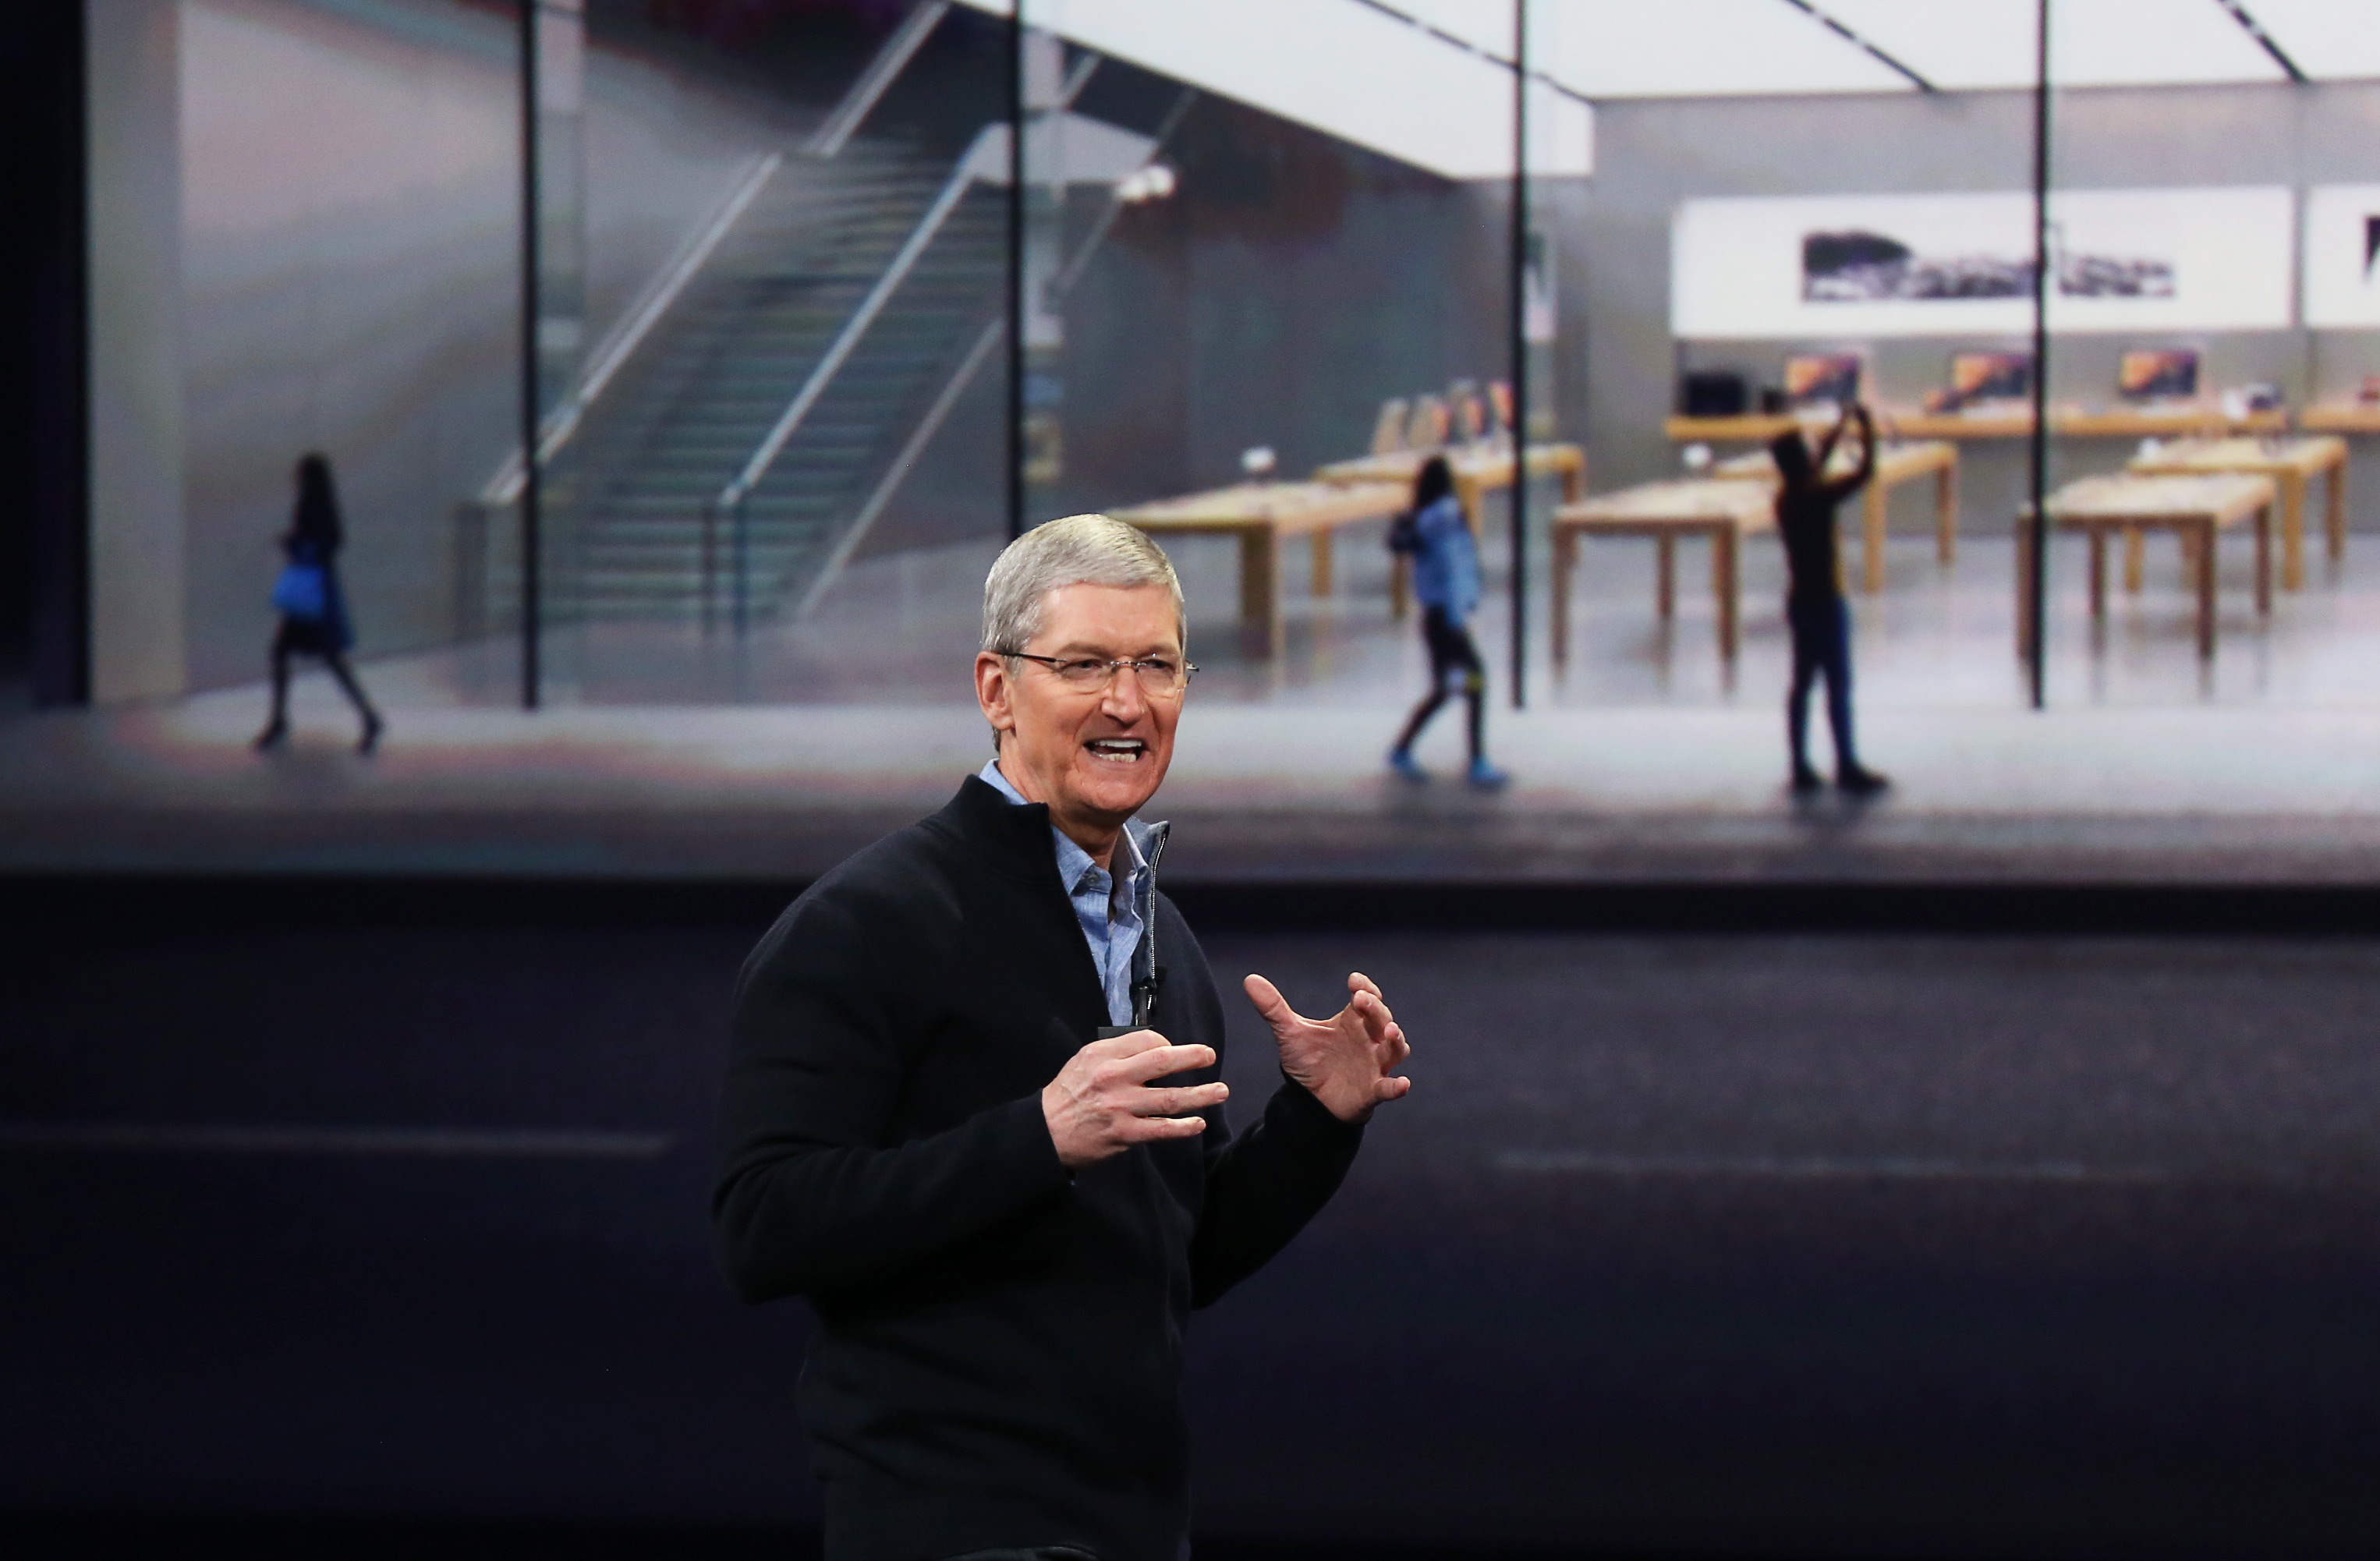 Apple CEO Tim Cook speaks during an Apple event in San Francisco